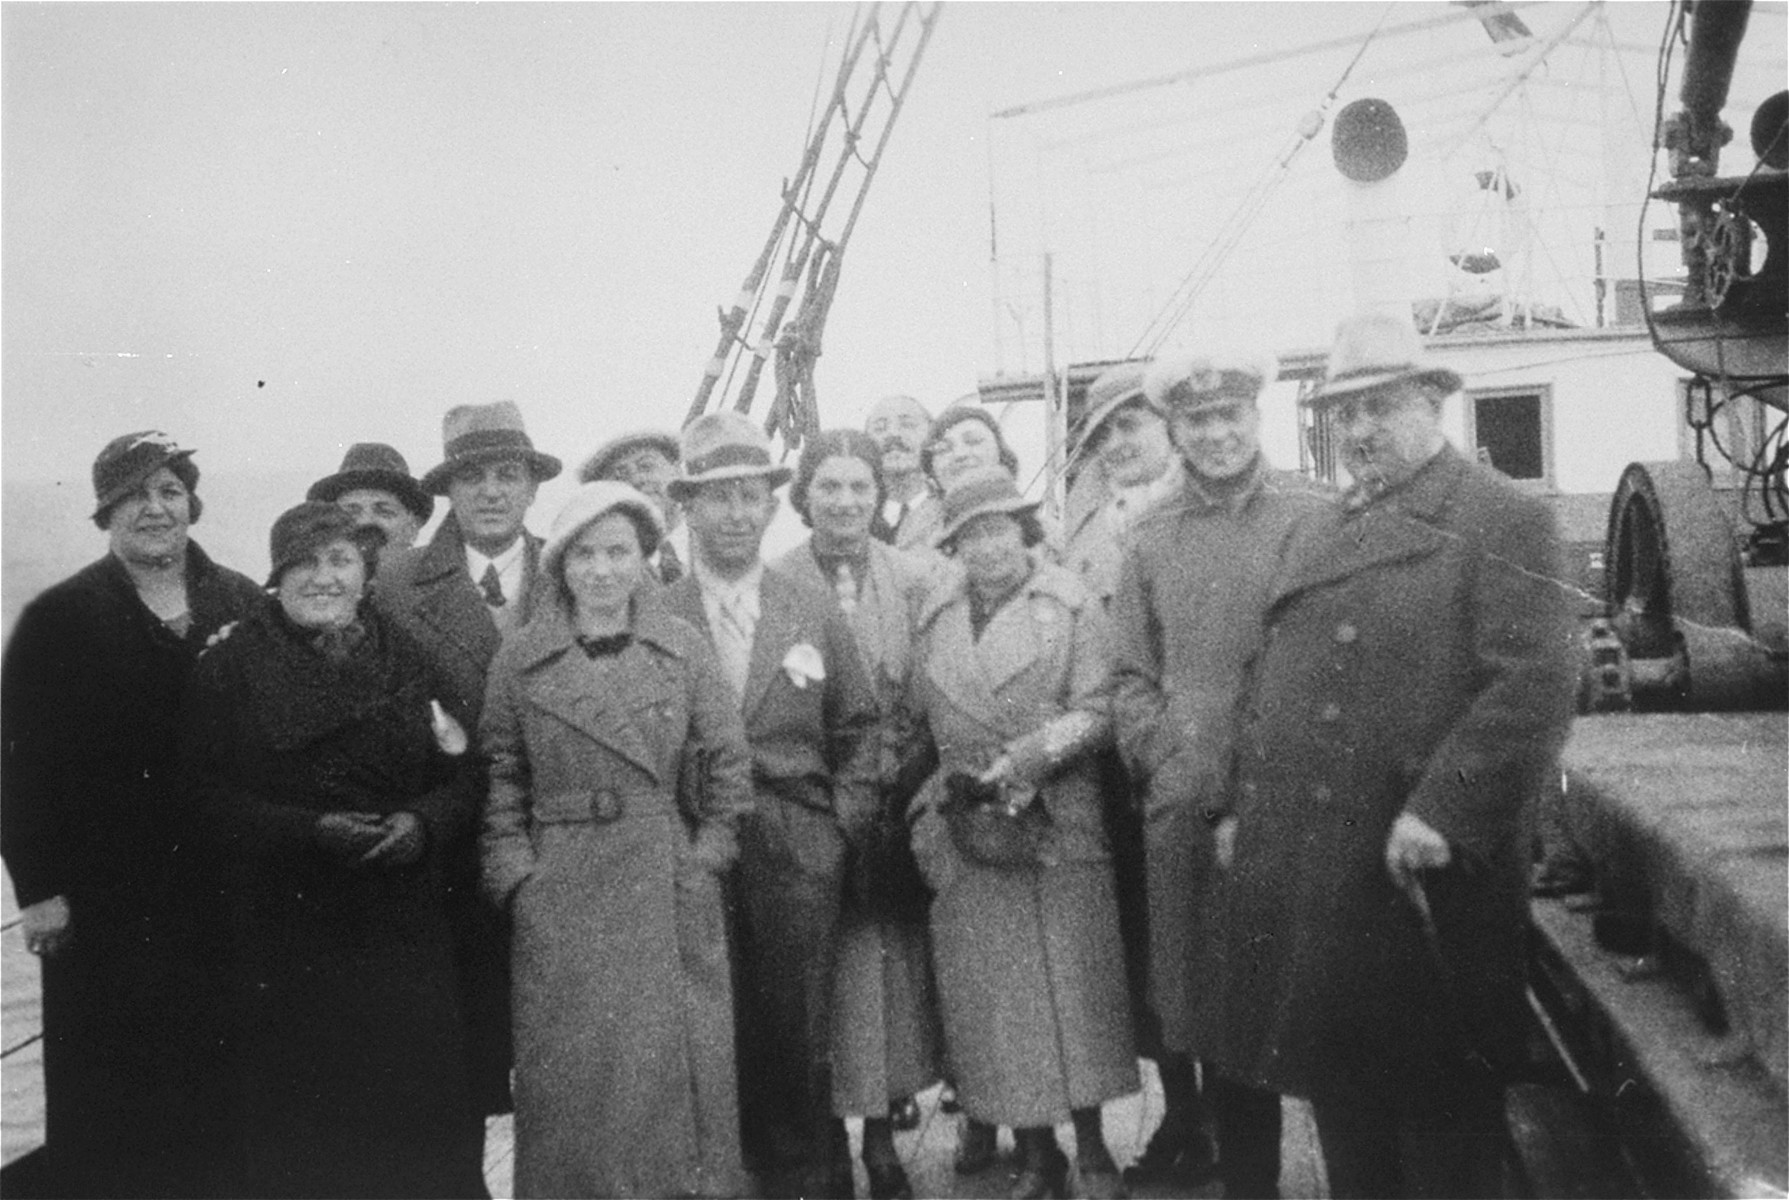 Group portrait of Jewish couples from the Balkans on board a ship during a sightseeing excursion to Palestine.  Among those pictured are Beno and Blanka Kupfermann (center).